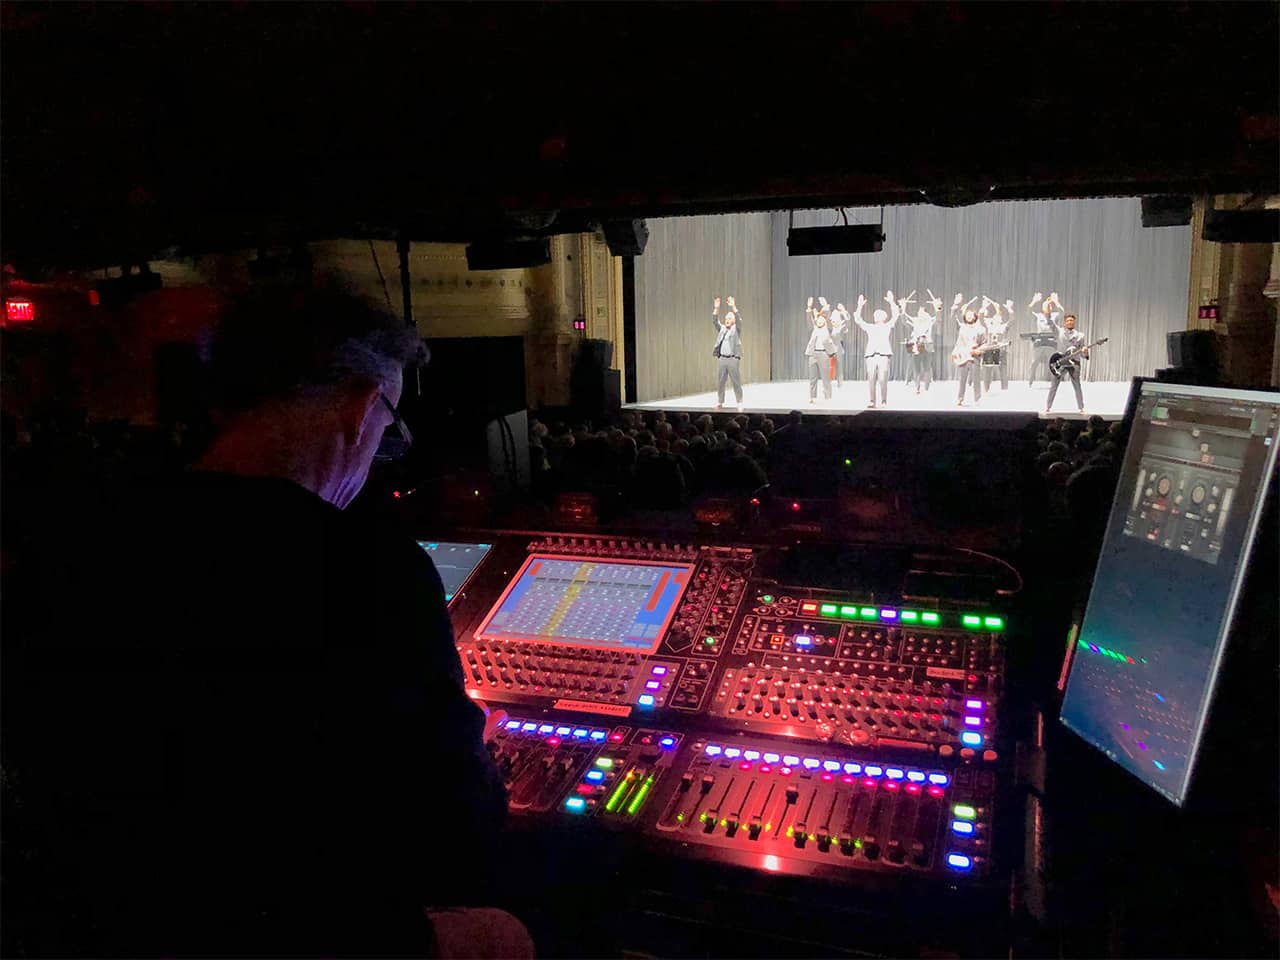 FOH engineer Peter Keppler, mixing a performance of American Utopia by David Byrne at Broadway's Hudson Theatre